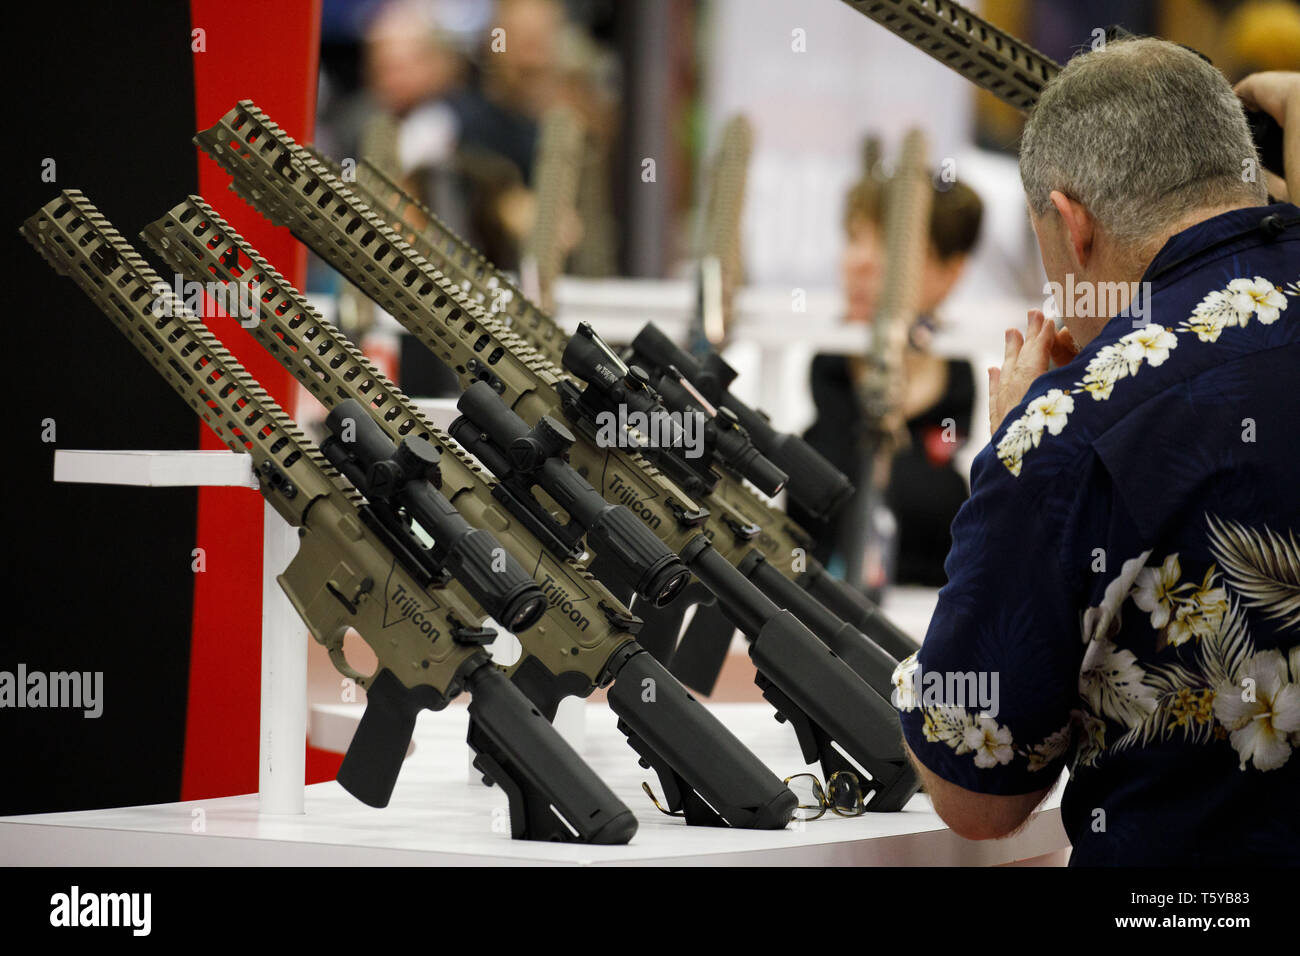 May 6, 2018 - Dallas, Texas, U.S. - An attendee looks at Trijicon sights for AR-15 style rifles during the National Rifle Association (NRA) annual meeting on Sunday, May 6, 2018 in Dallas, Texas.  © 2018 Patrick T. Fallon (Credit Image: © Patrick Fallon/ZUMA Wire) Stock Photo